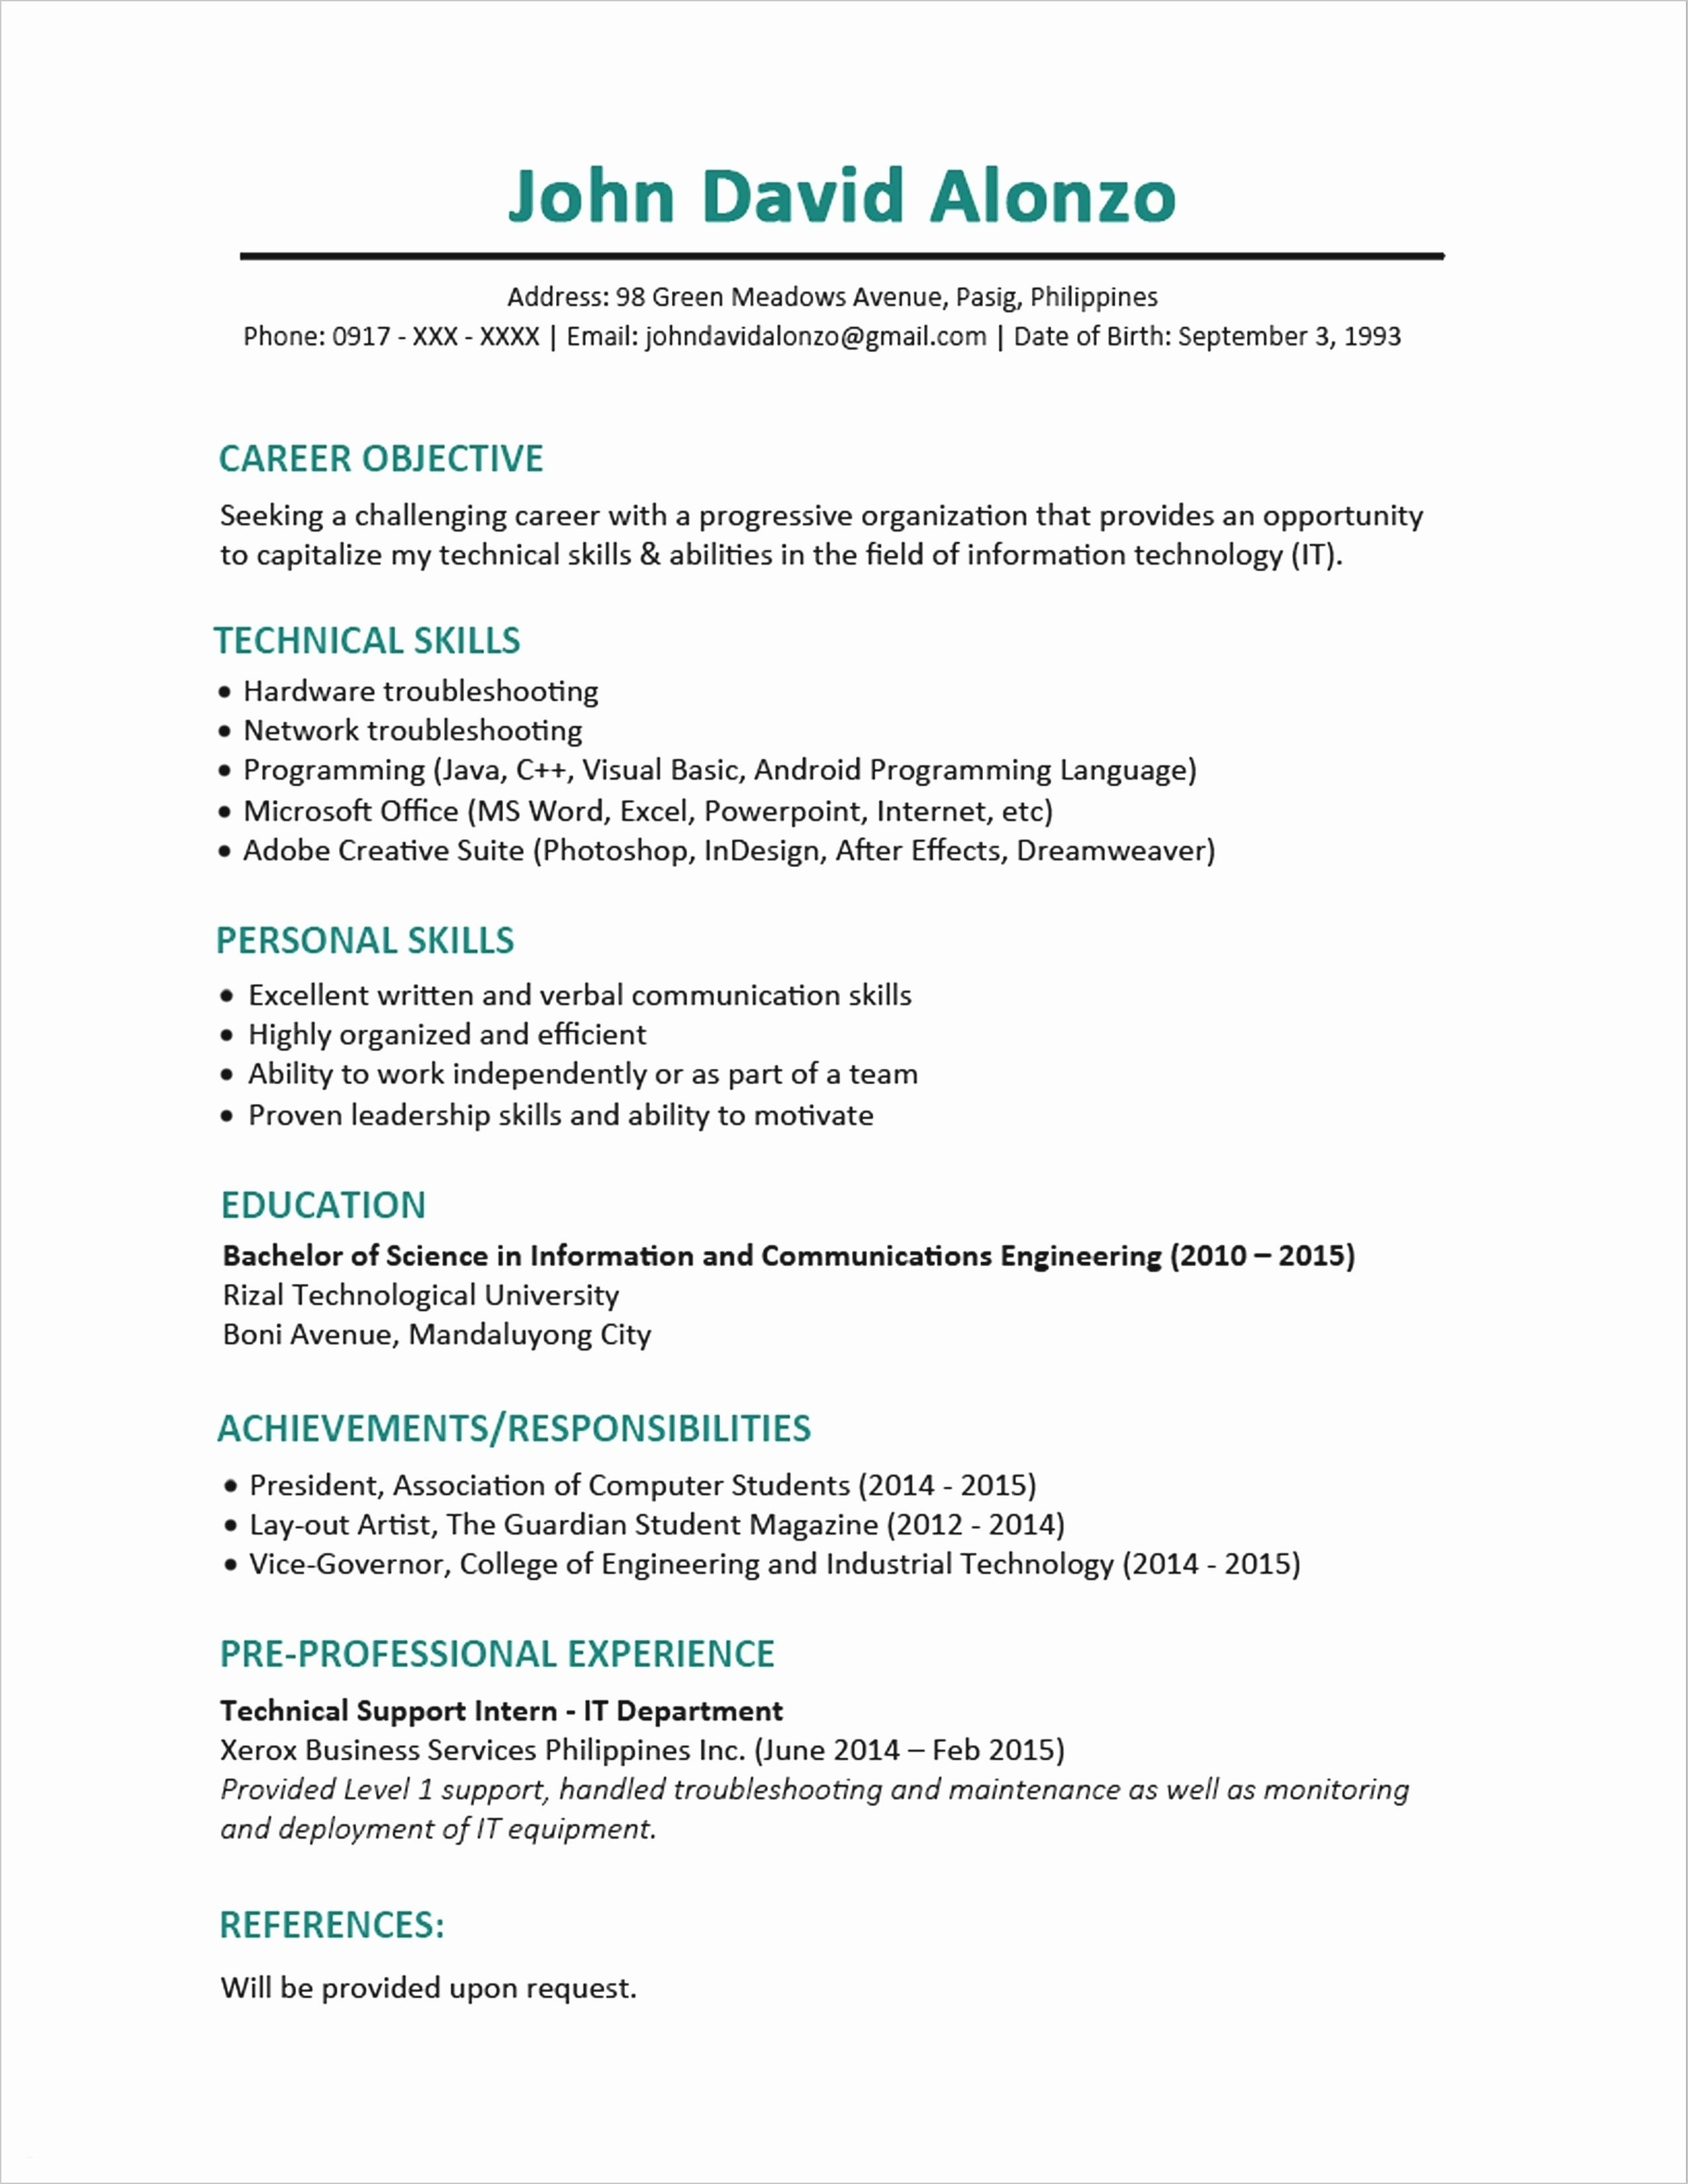 Resume Template Docx Professional In 2020 Resume Objective Examples Resume Skills Simple Resume Sample